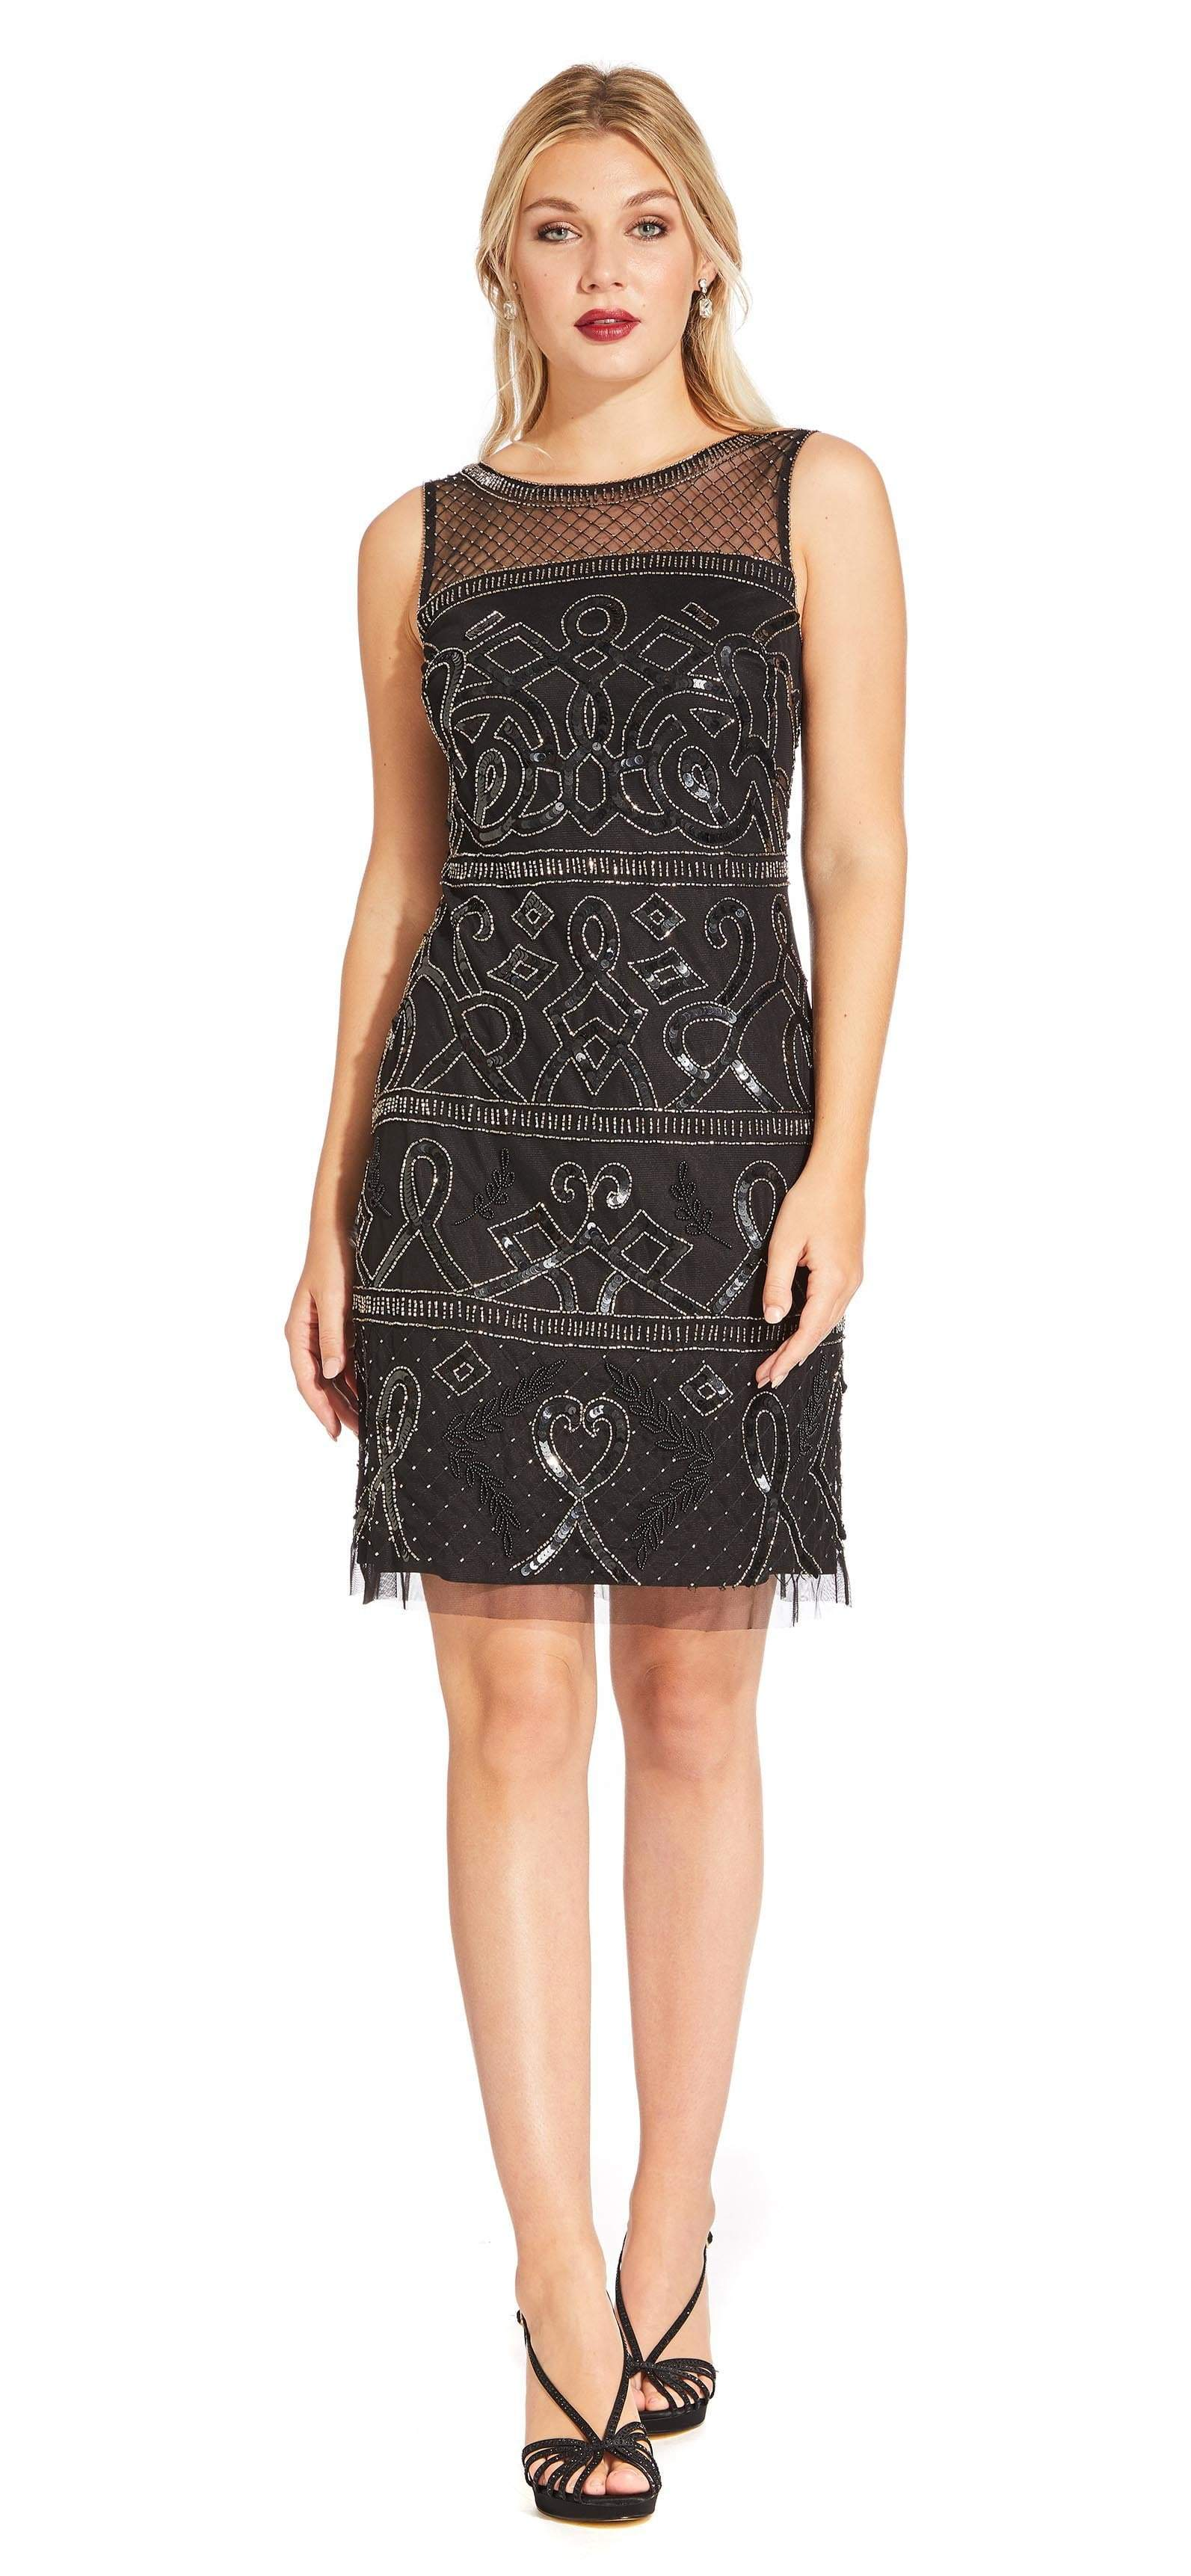 Adrianna Papell - AP1E203952 Beaded Illusion Sheath Cocktail Dress In Black